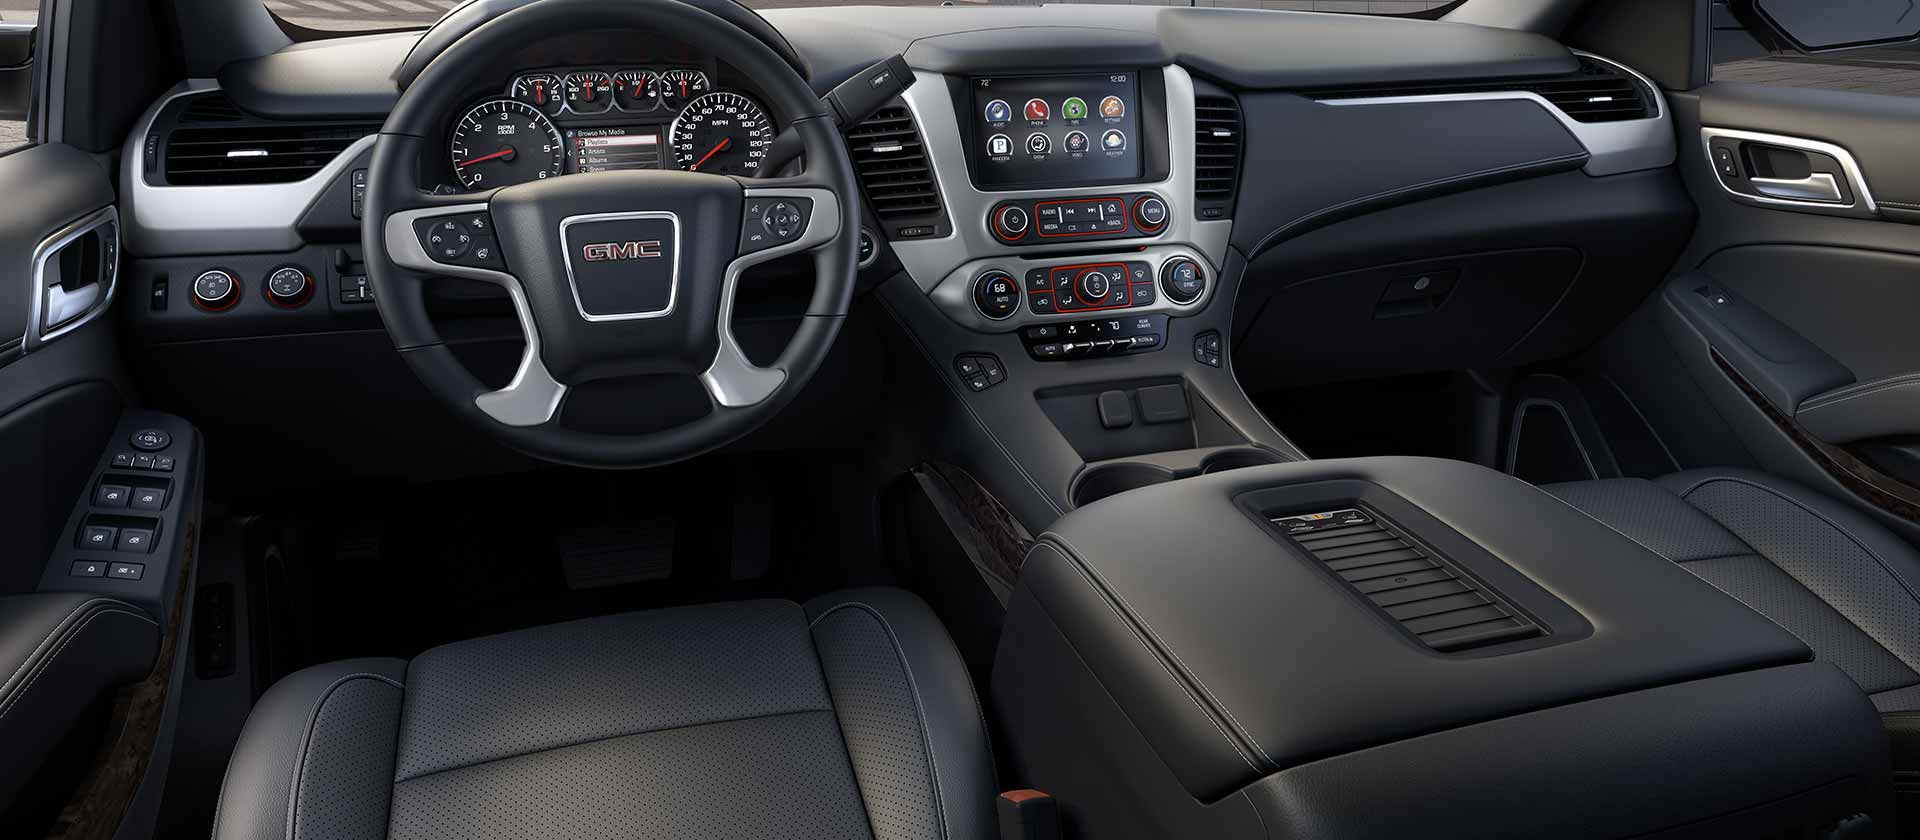 2015 Gmc Yukon Xl Driver Seat And Dashboard (Photo 3 of 10)